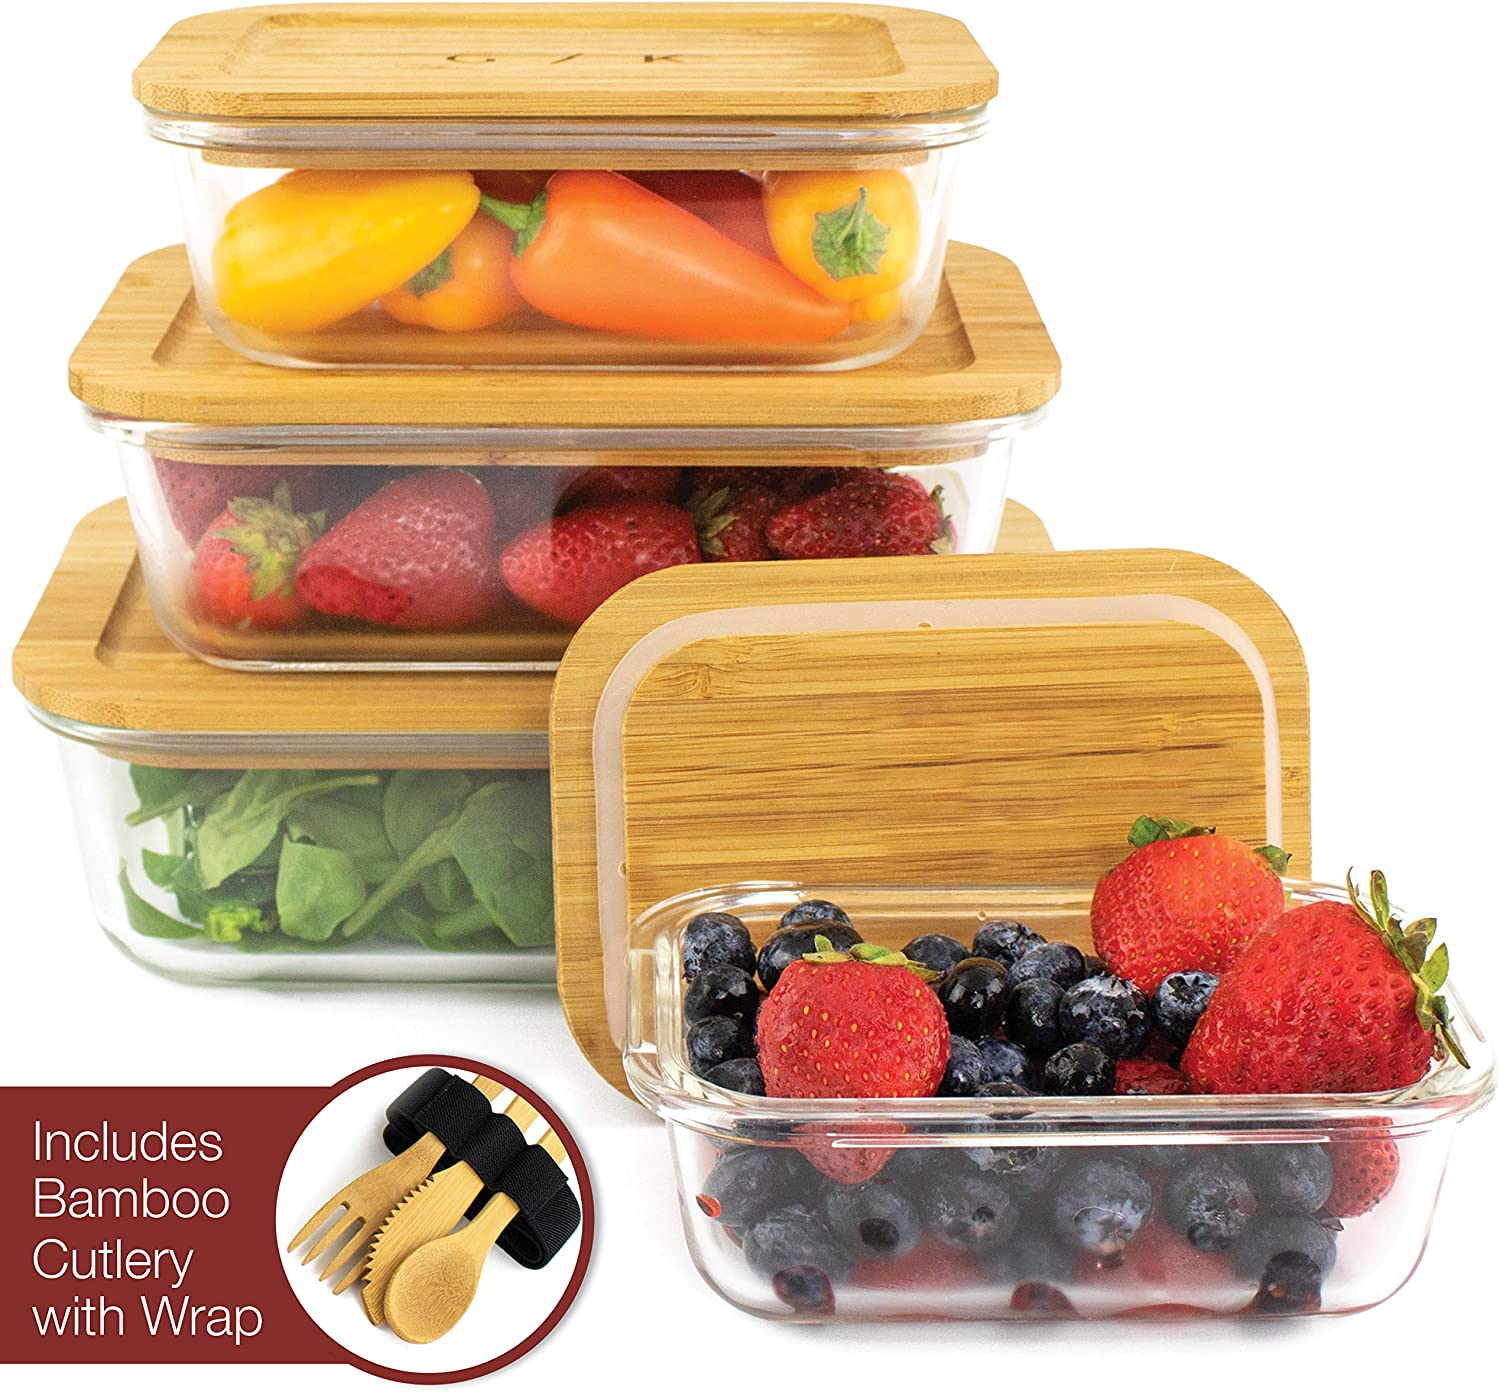 Glass Food Storage Containers with Eco Friendly, Sustainable Bamboo Lids, Set of 4. Plastic Free, BPA Free. Includes Bamboo Cutlery & Adjustable Wrap. Glass Bento Box Great for Meal Prep (assorted)